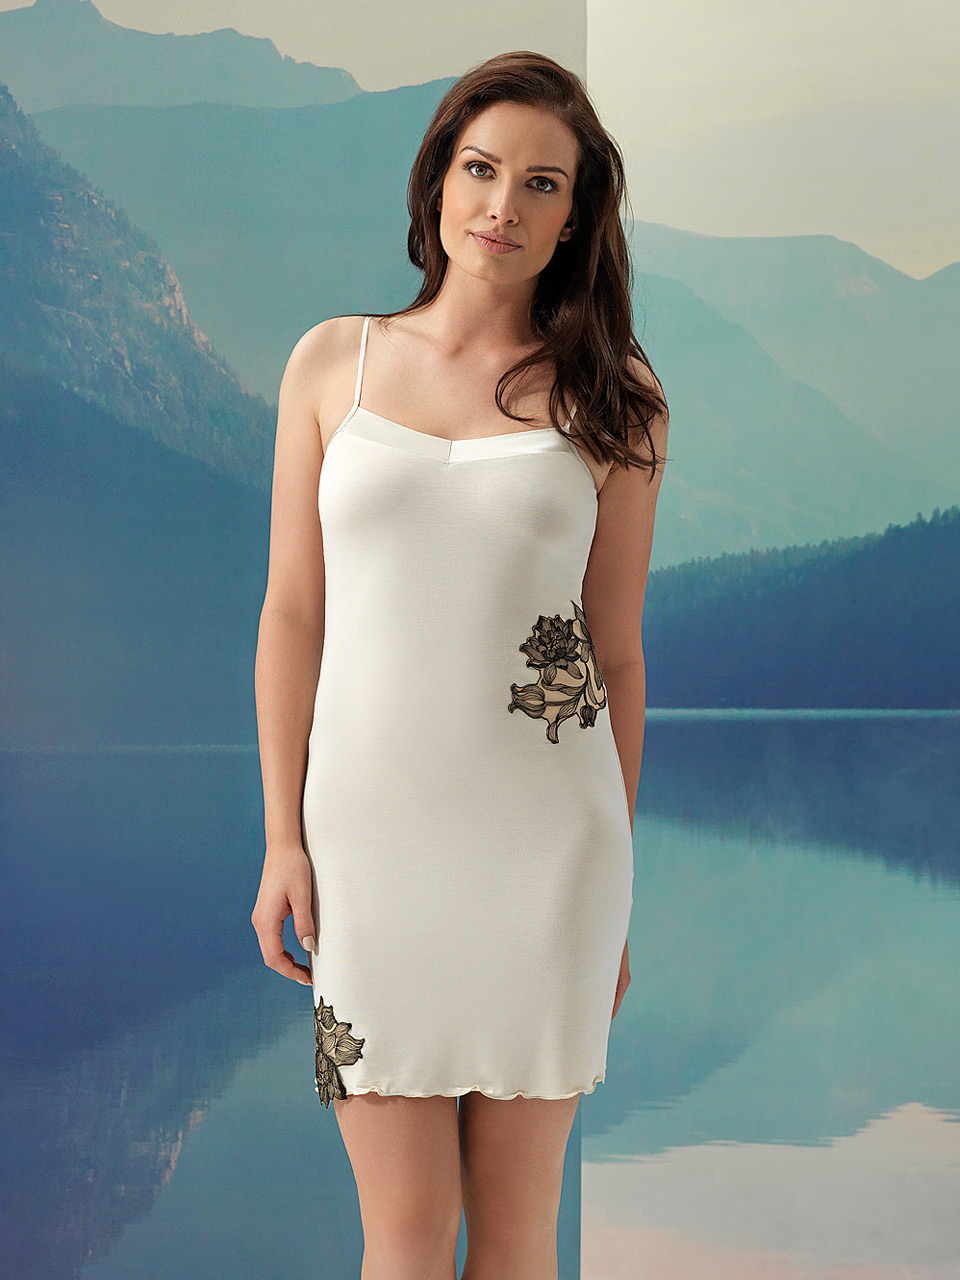 Fleur 2963 Chemise<br />10 Ivory, 02 Black, 28 Cappuccino